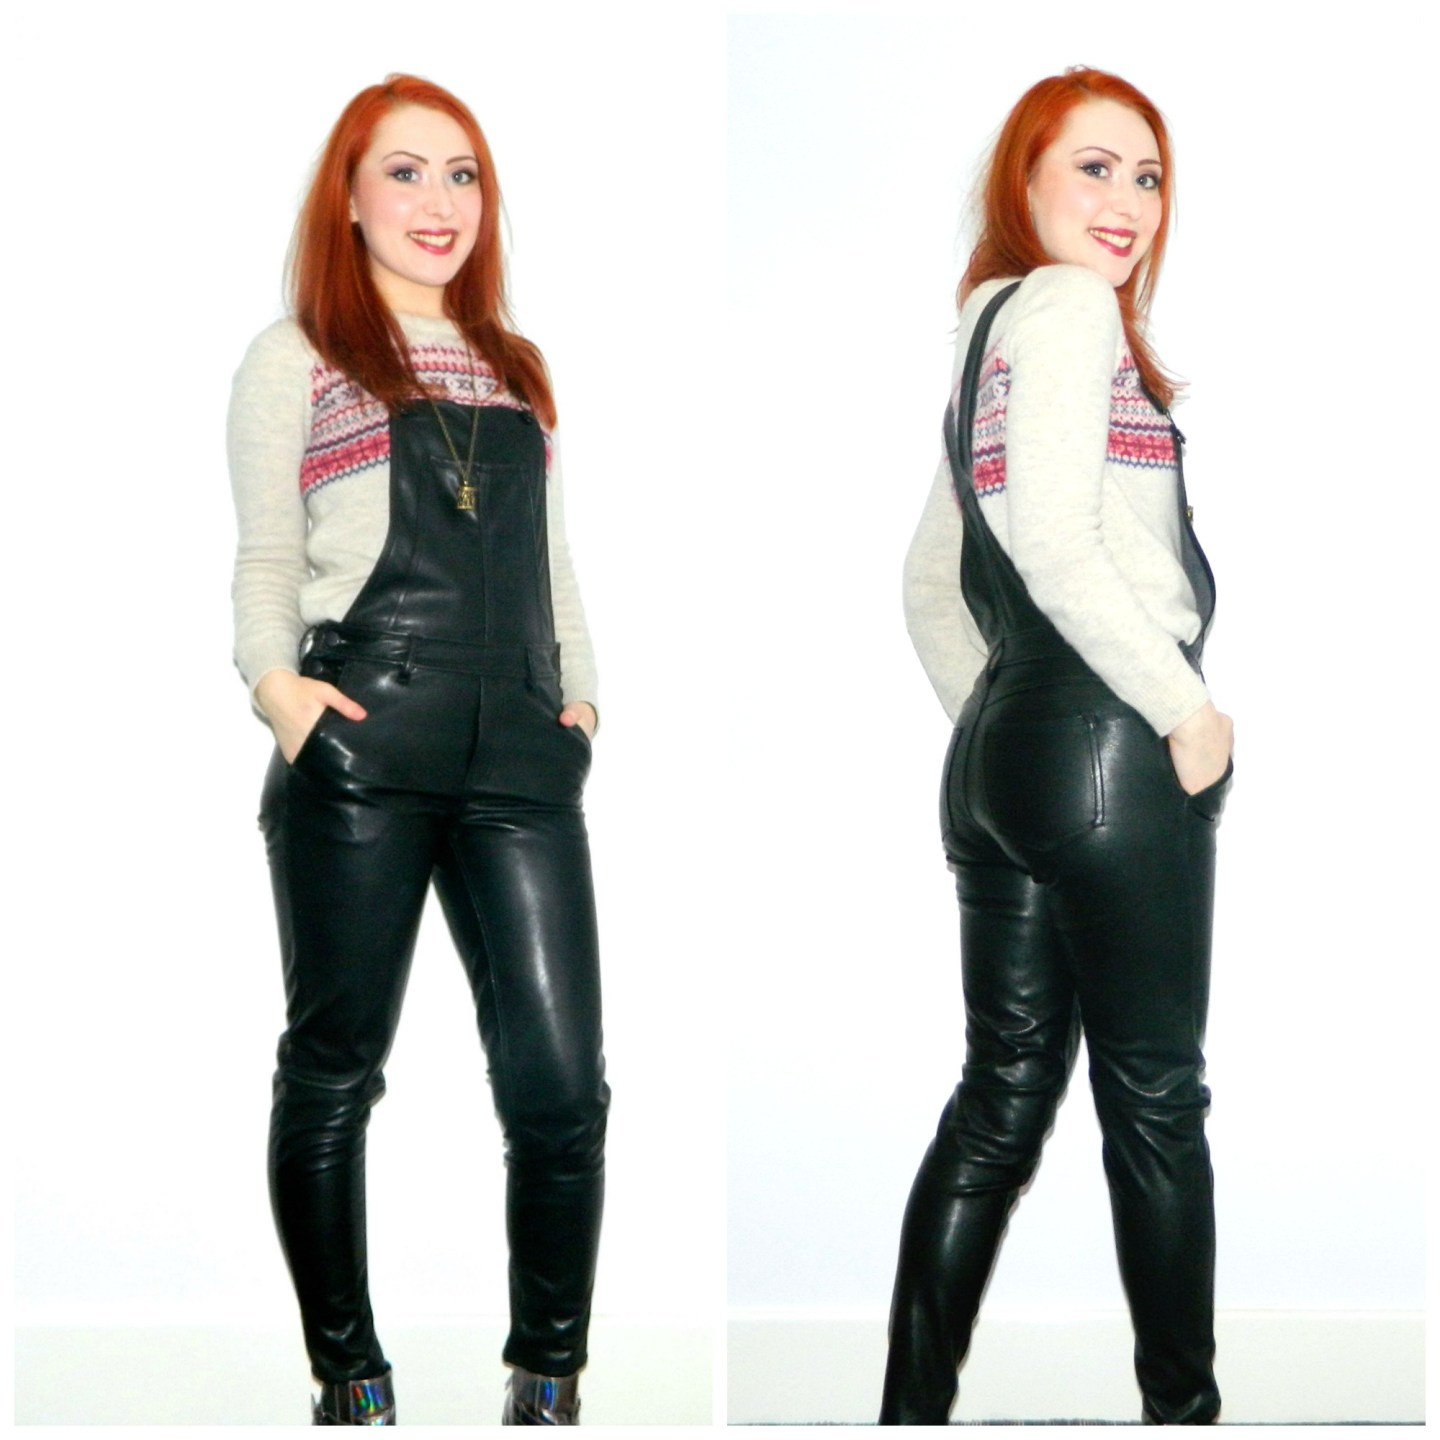 Dungarees and Knitwear: the not-so-cute leather look